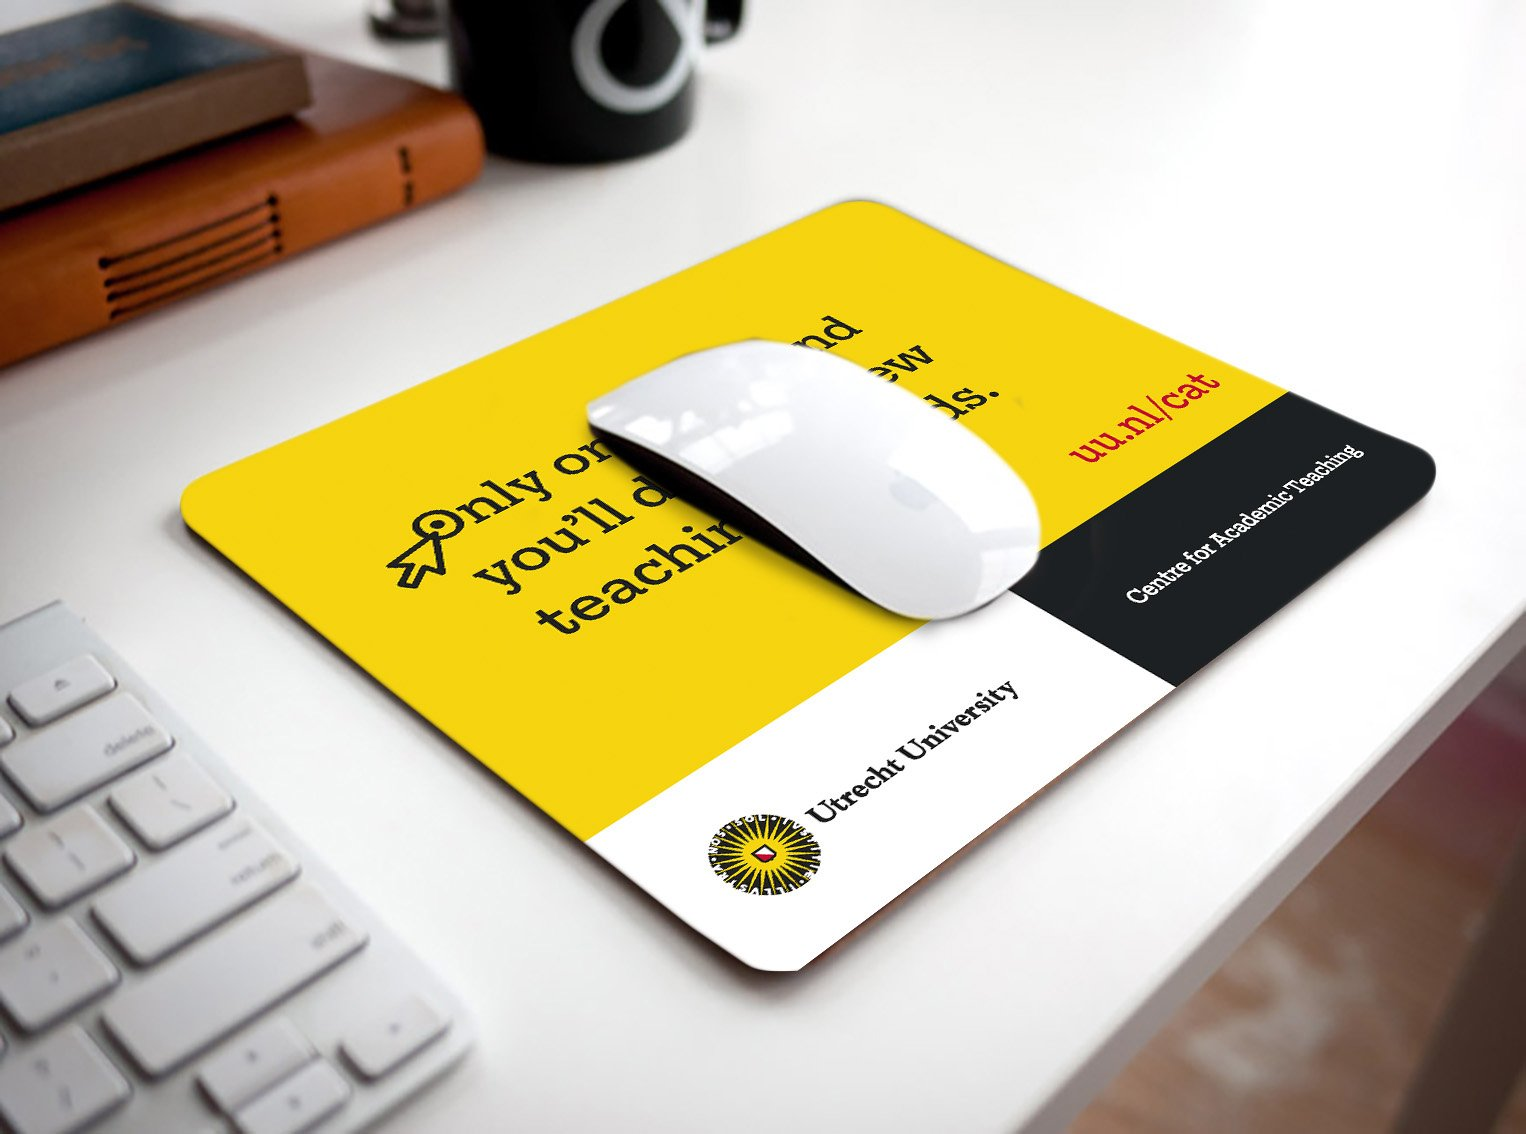 Centre for Academic Teaching, mousepad